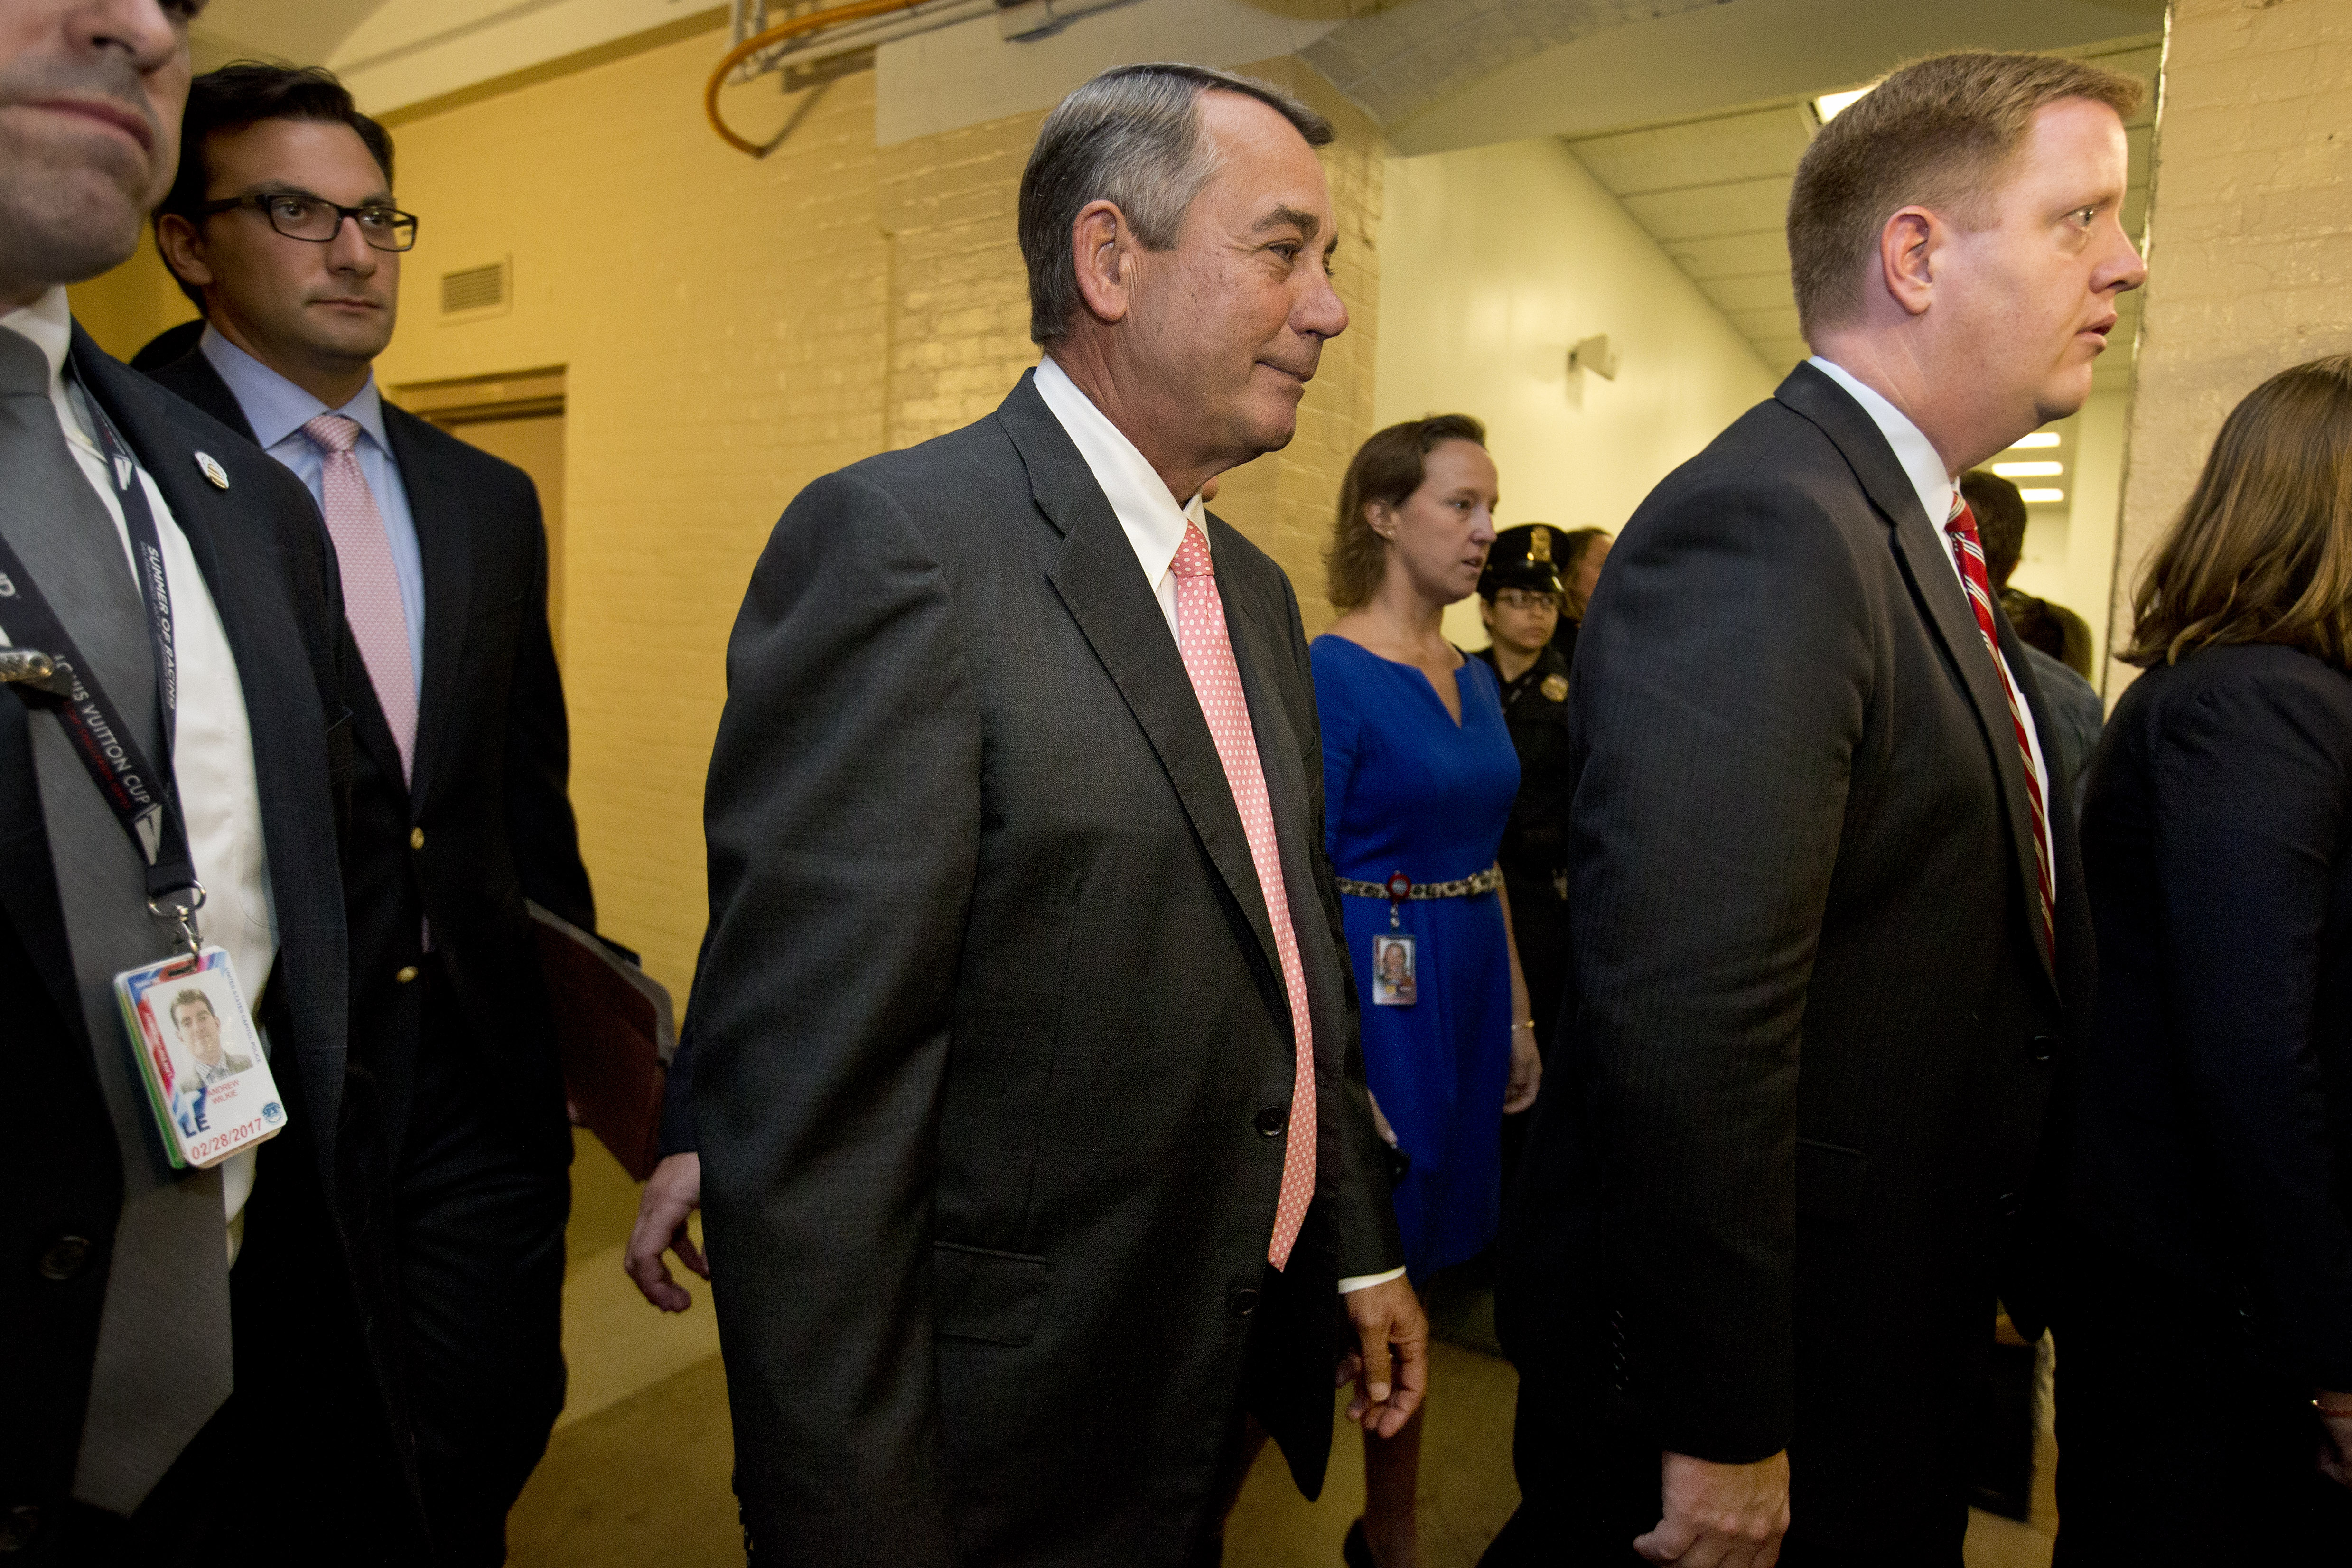 House Speaker John Boehner of Ohio leaves a meeting with House Republicans on Capitol Hill in Washington, Friday, Sept 25, 2015. In a stunning move, Boehner informed fellow Republicans on Friday that he would resign from Congress at the end of October, giving up his top leadership post and his seat in the House in the face of hardline conservative opposition. (AP Photo/Jacquelyn Martin)